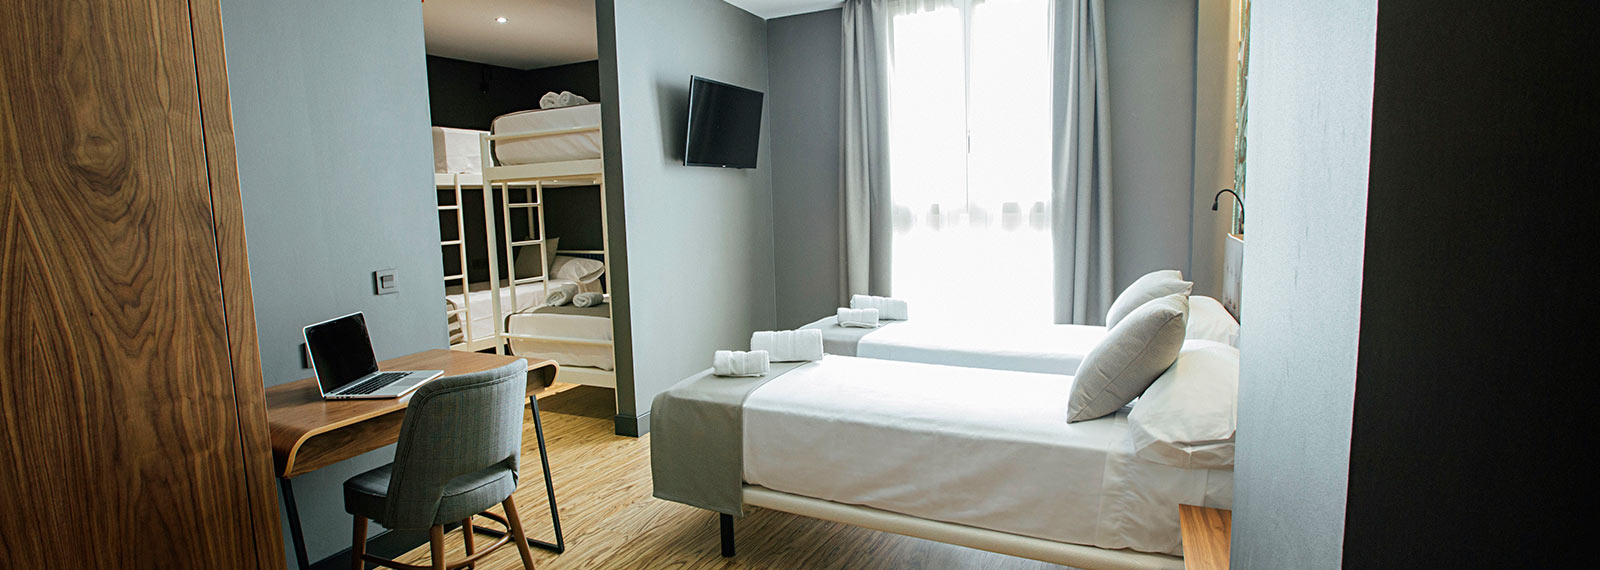 Hotel boutique habitaci n familiar en m laga premium hotel for Habitacion familiar en zaragoza